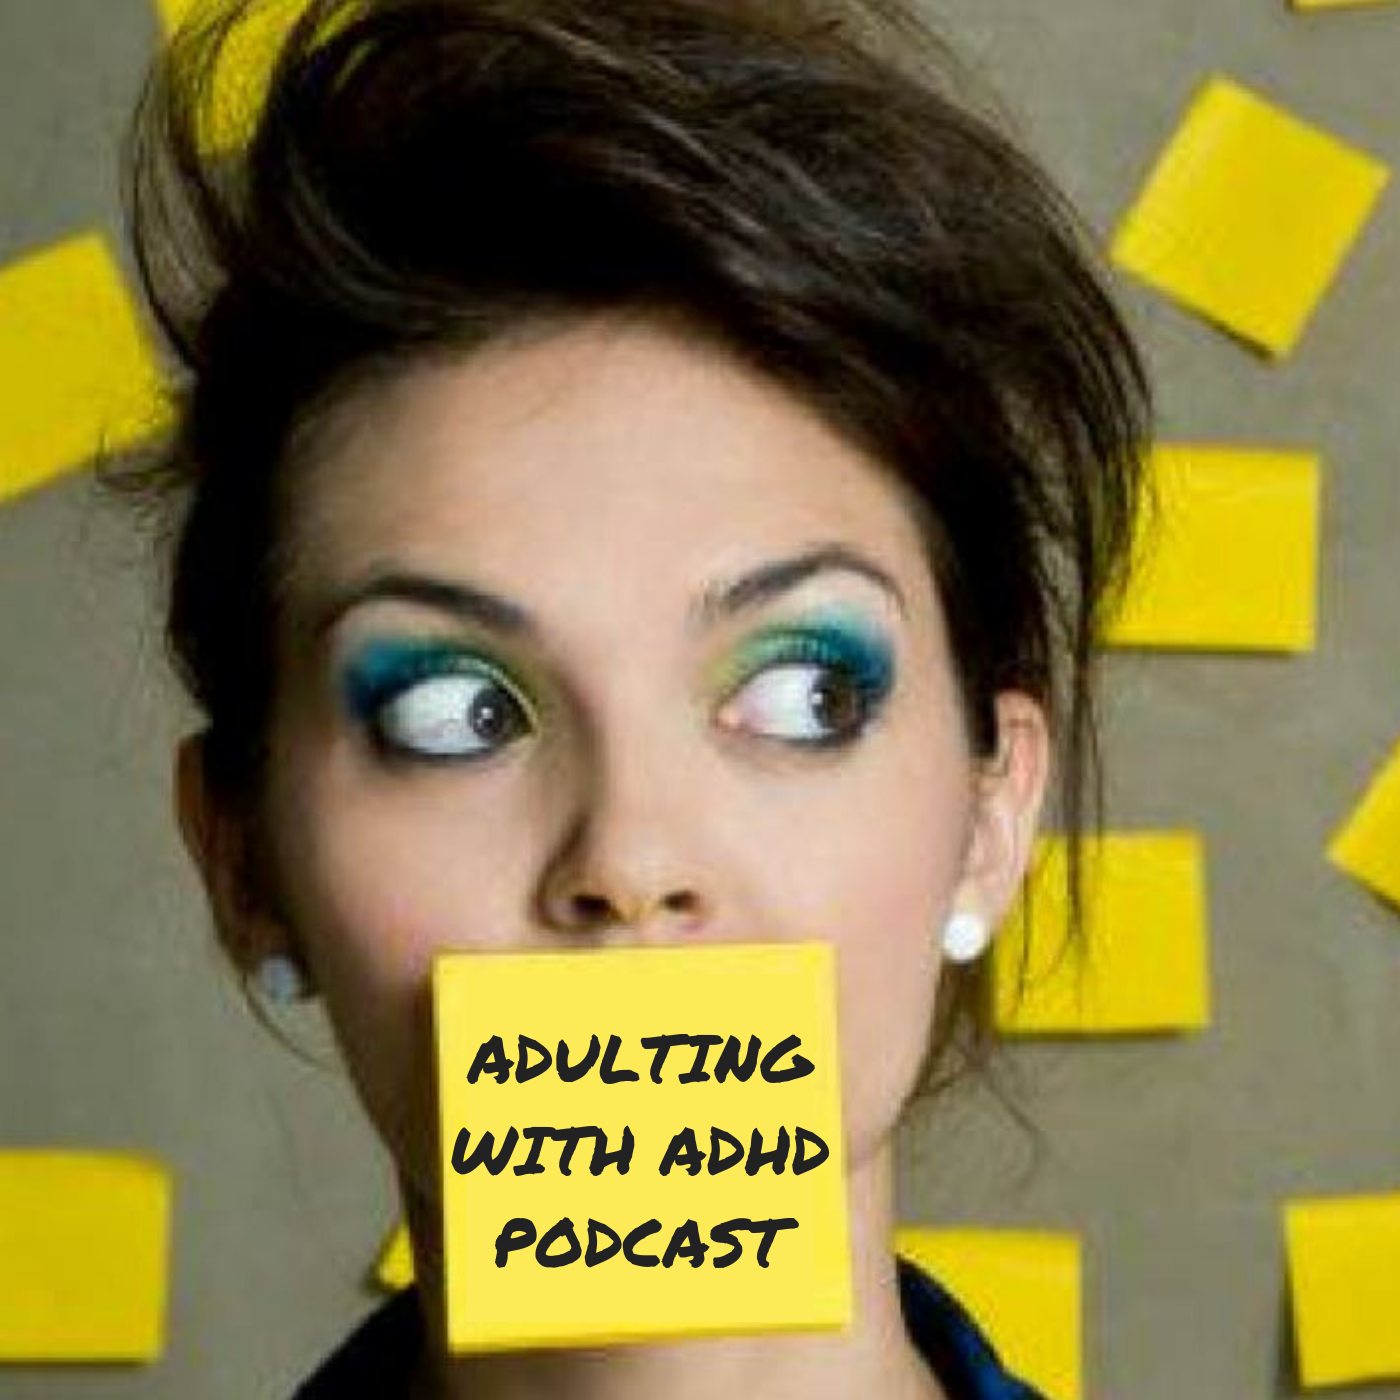 Adulting With ADHD Podcast show art